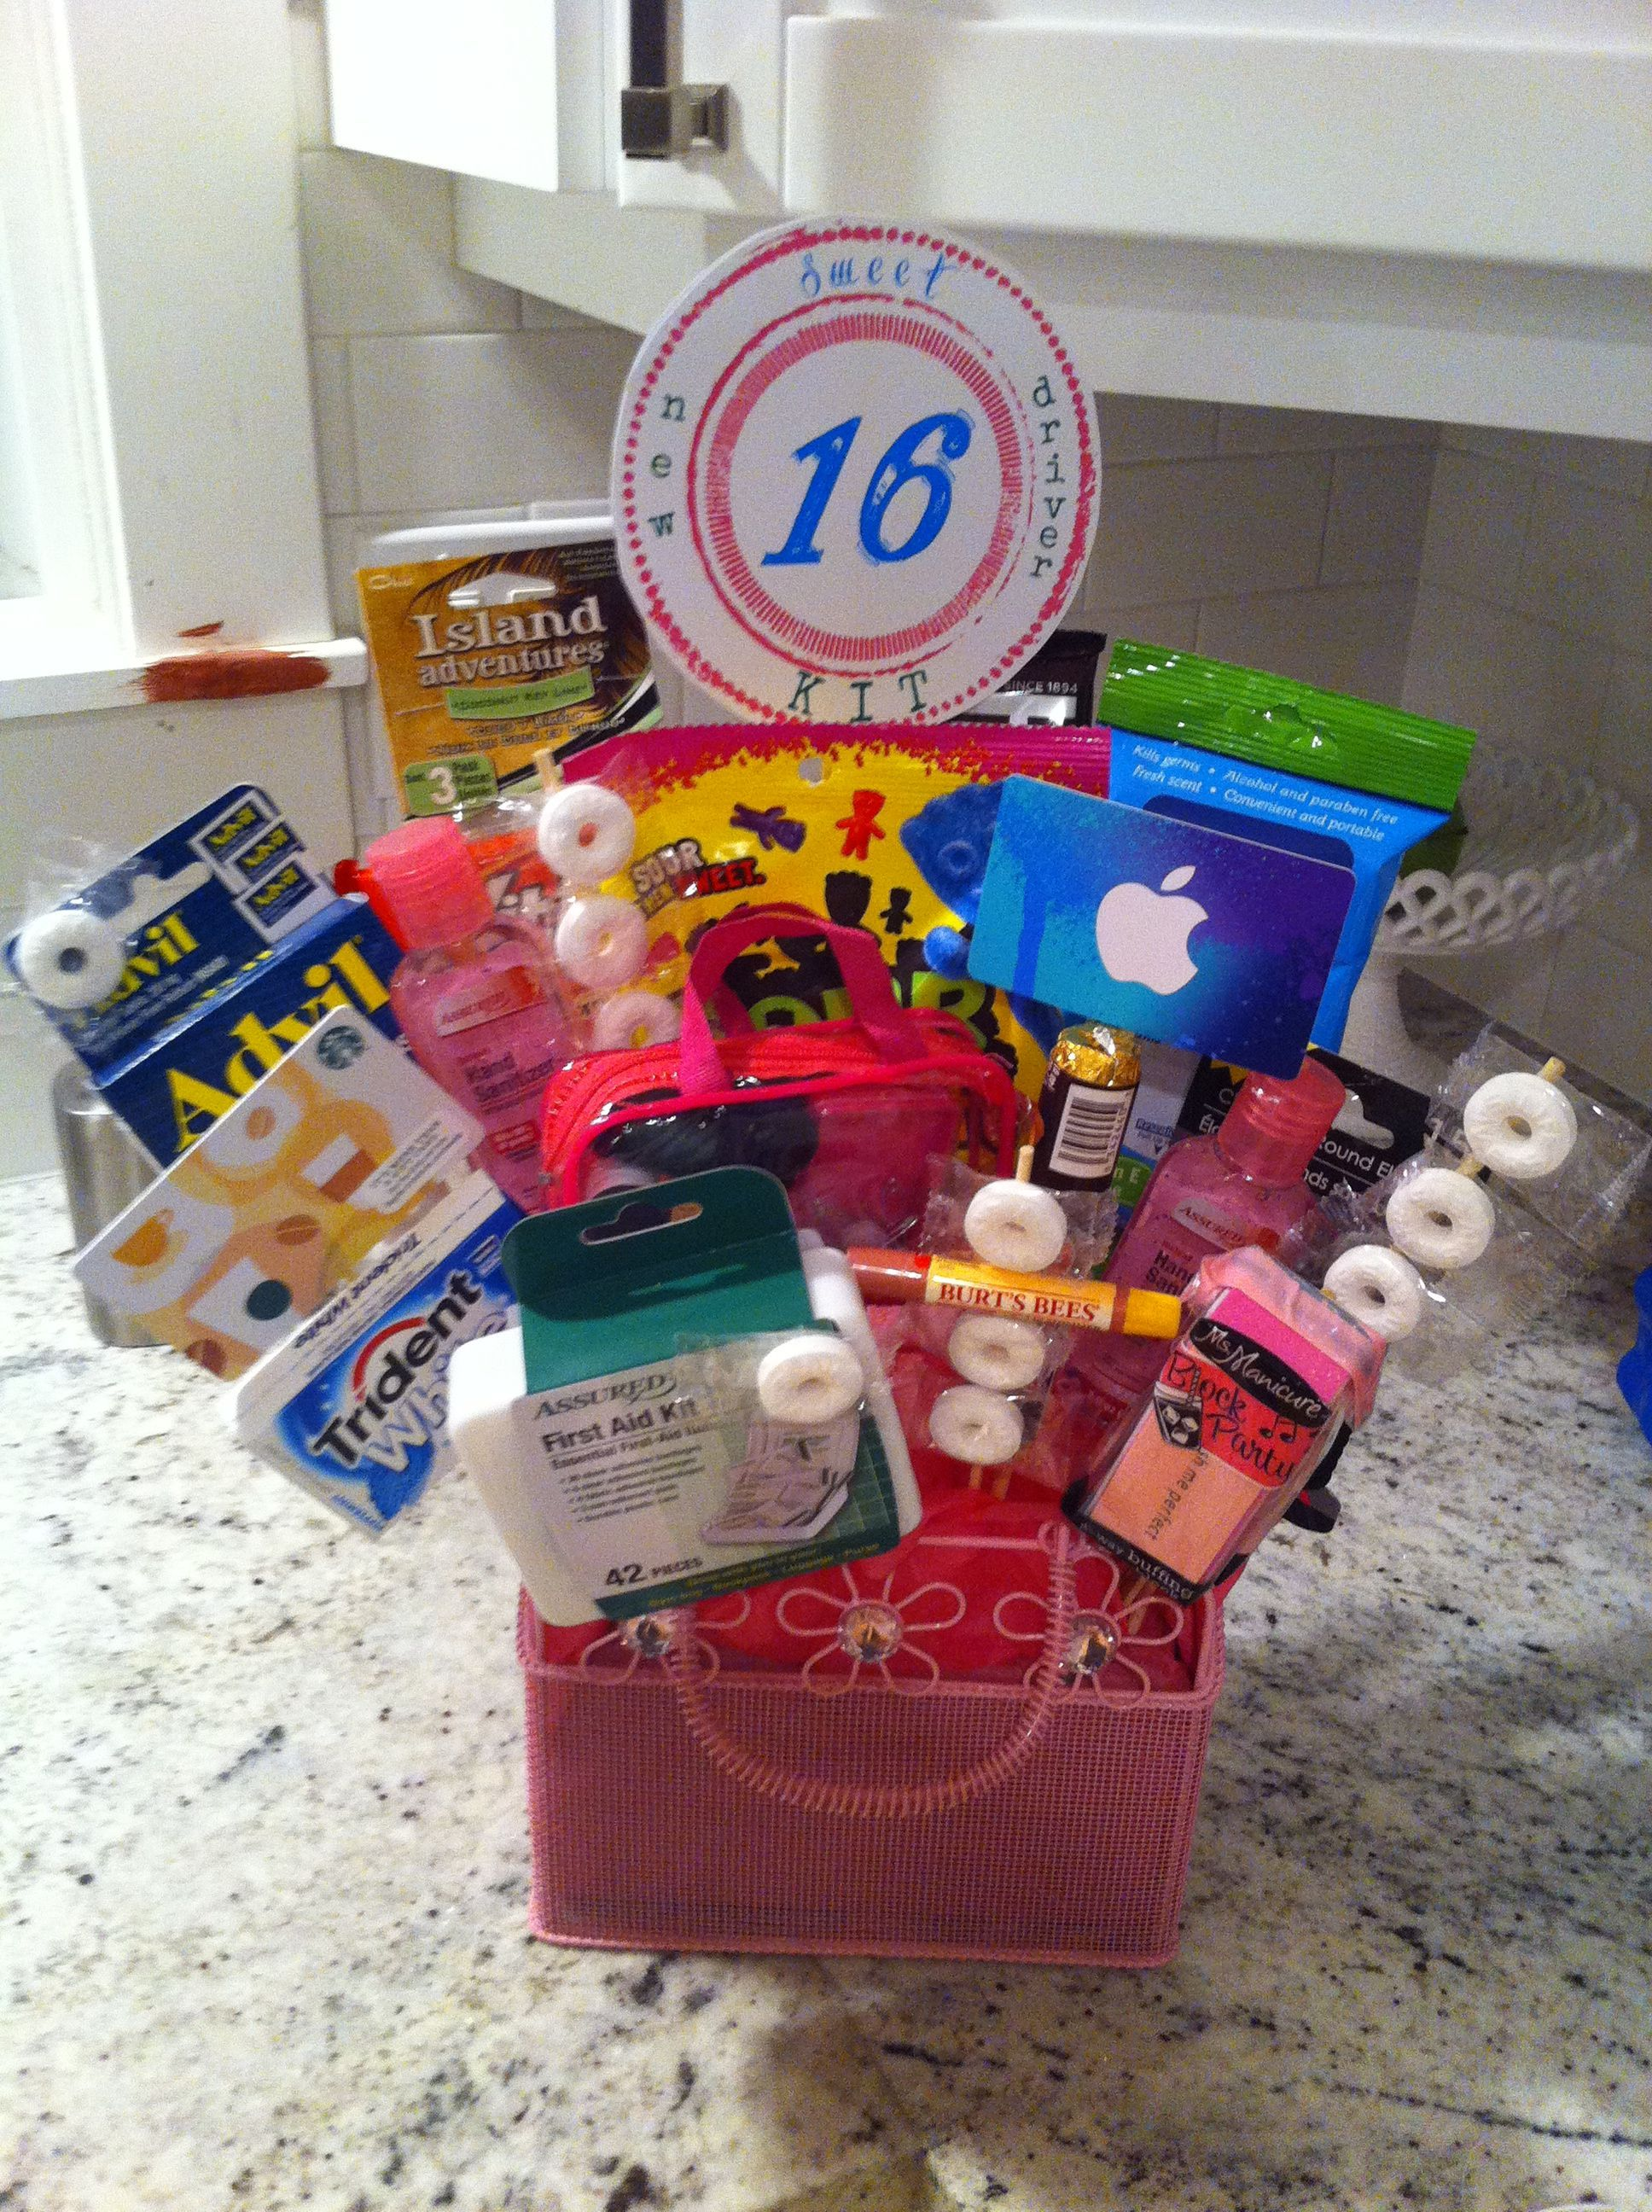 Great way to celebrate sweet 16. New Driver Gift bouquet